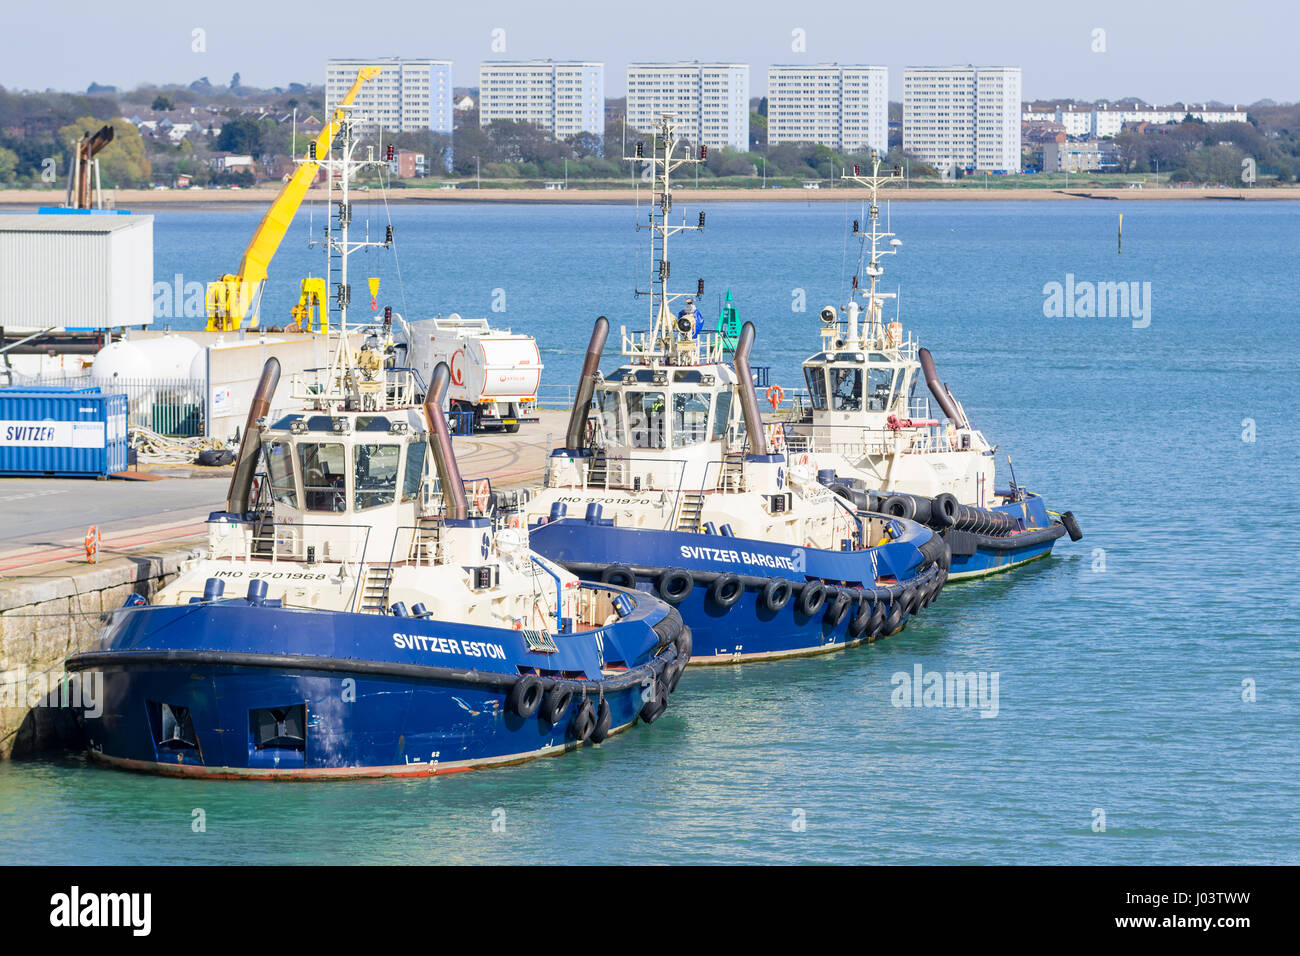 Tug boats at sea. 3 Svitzer tugboats moored in port in the Solent at Southampton, Hampshire, England, UK. Tug names: - Stock Image